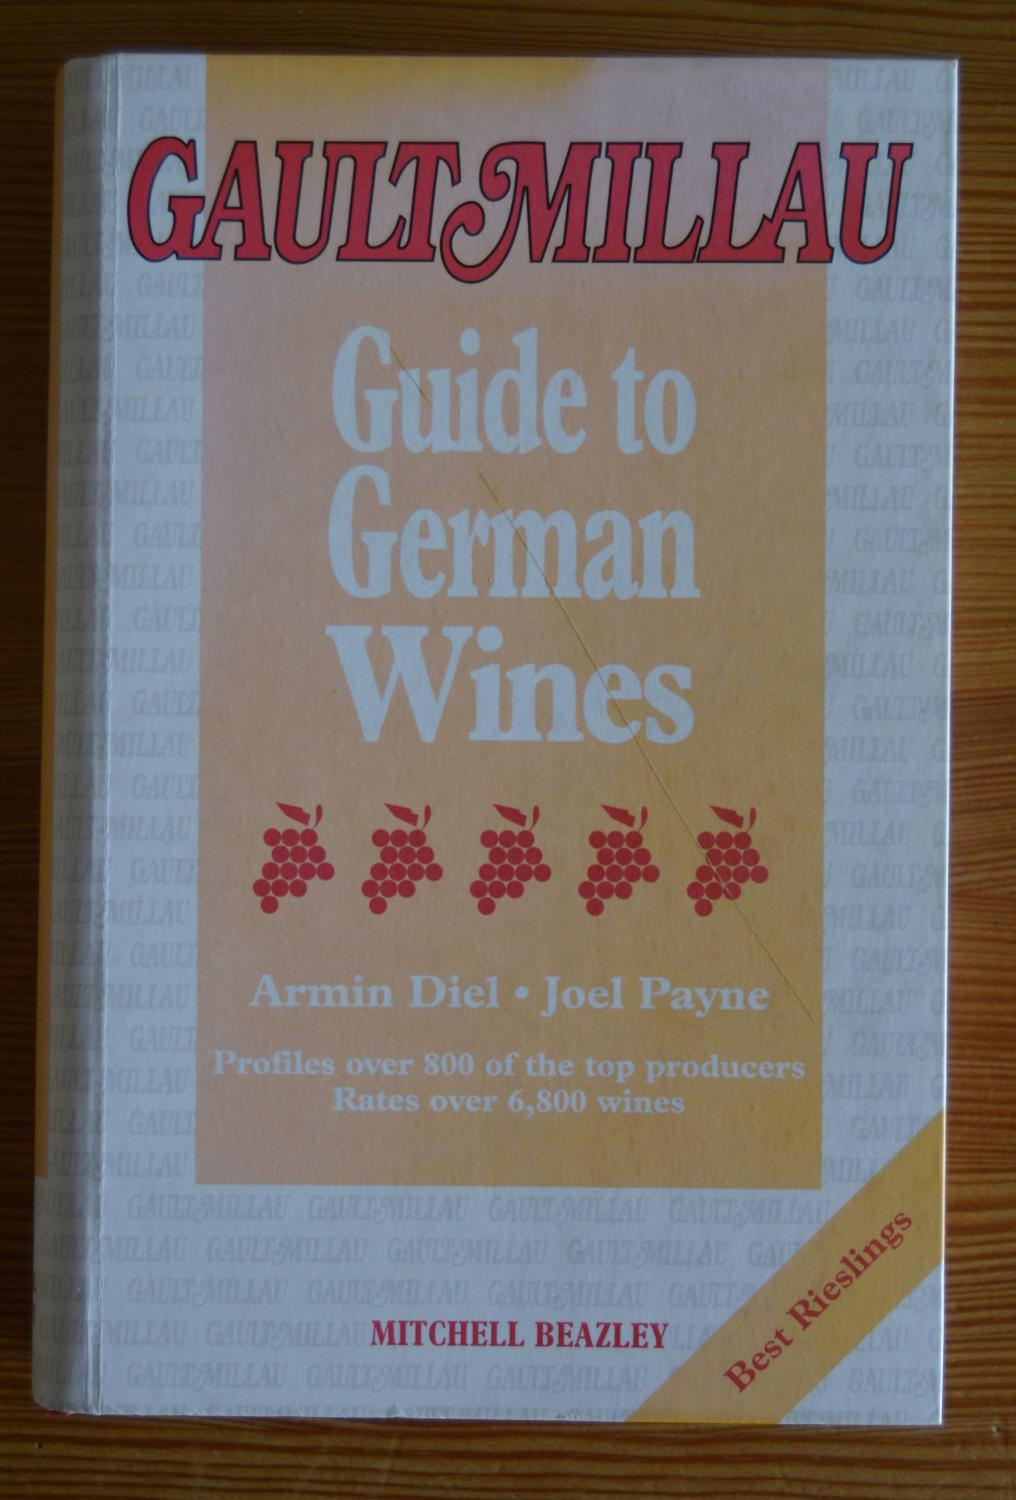 Gault Millau Guide to German Wines - Armin Diel; Joel Payne